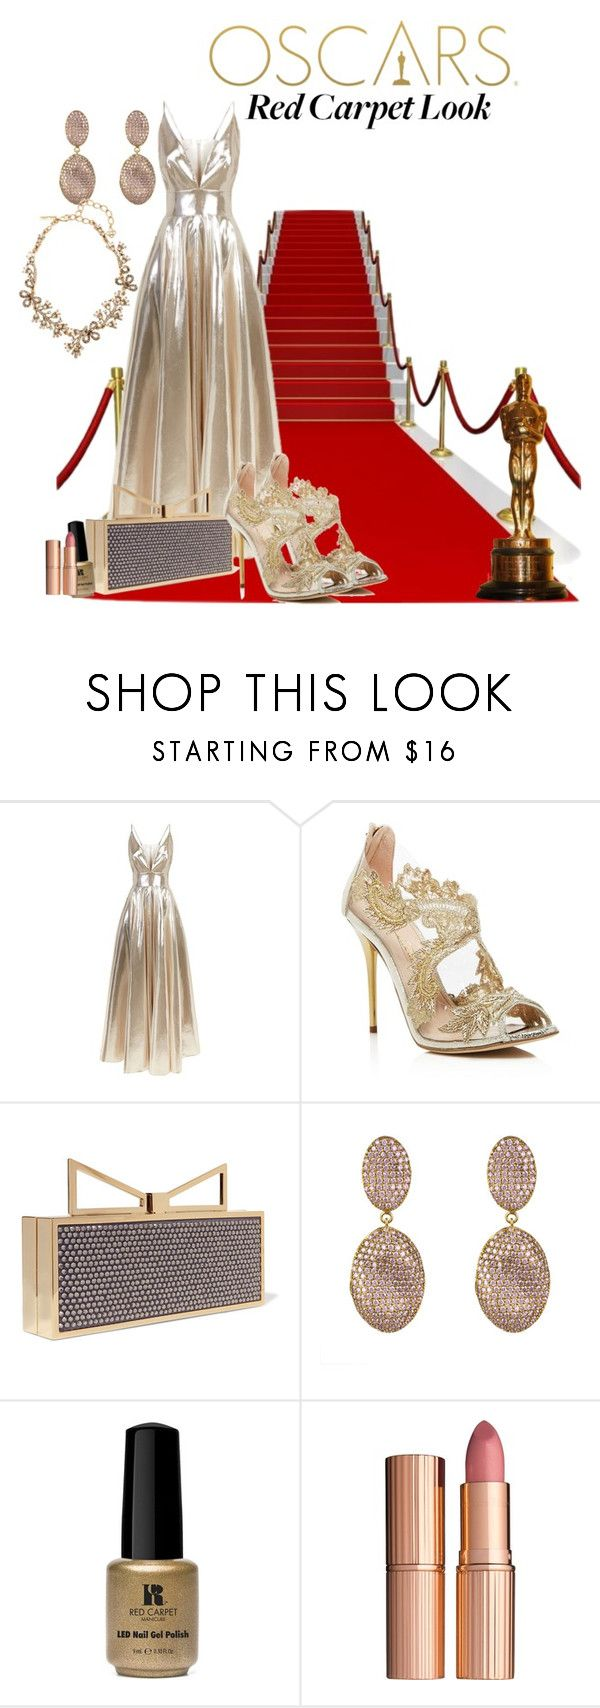 """Oscars 2017"" by jsandoval ❤ liked on Polyvore featuring La Mania, Oscar de la Renta, Sara Battaglia, Red Carpet Manicure and Charlotte Tilbury"